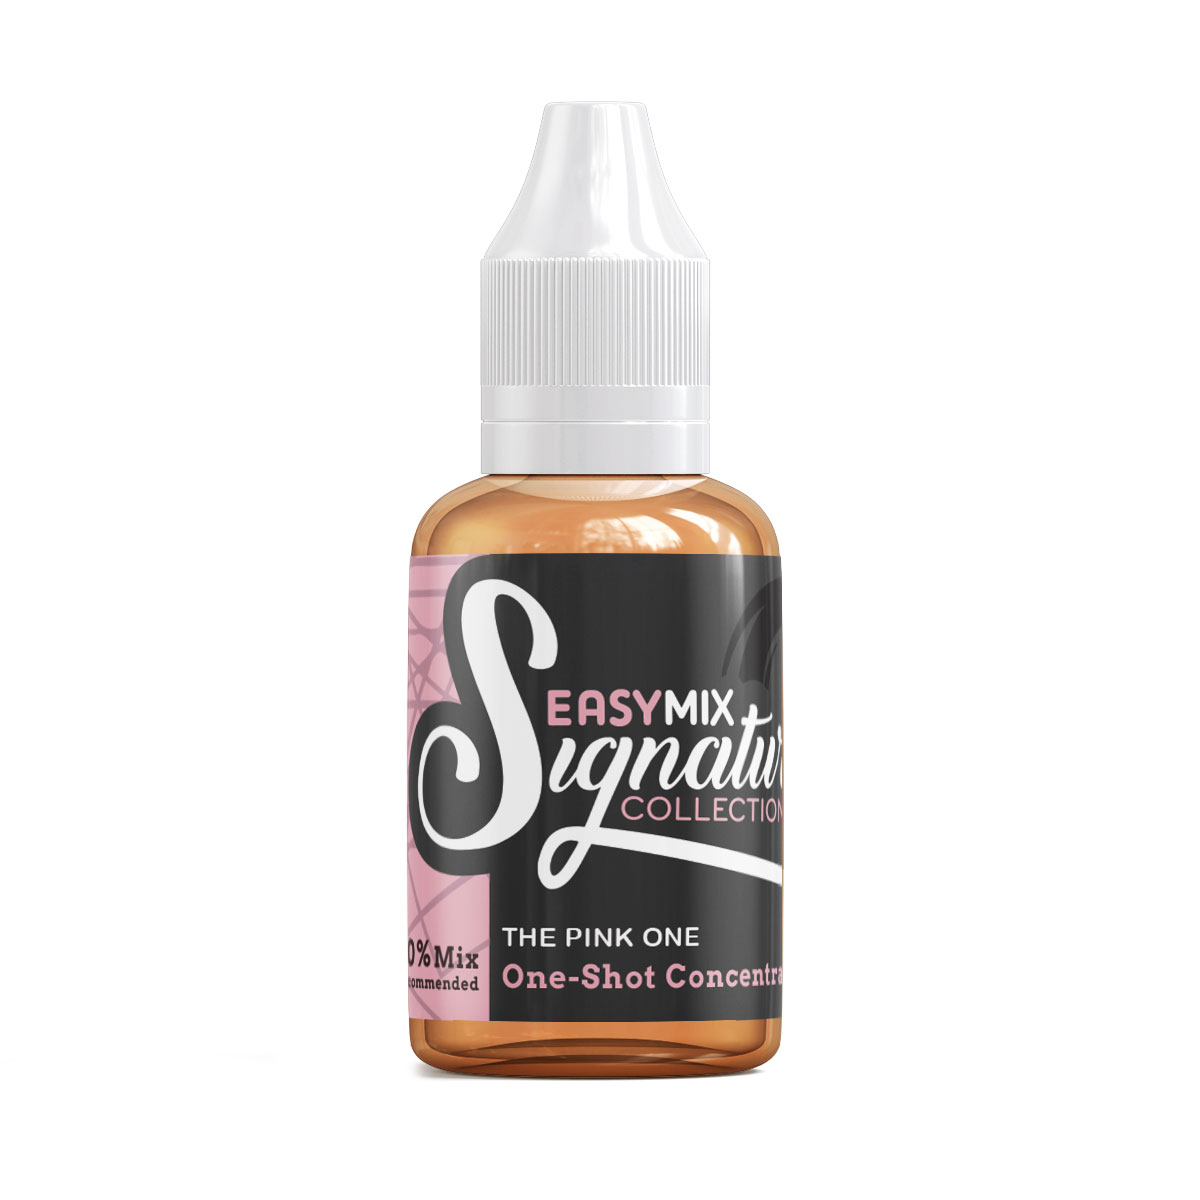 The Pink One Flavour Concentrate by EasyMix Signature